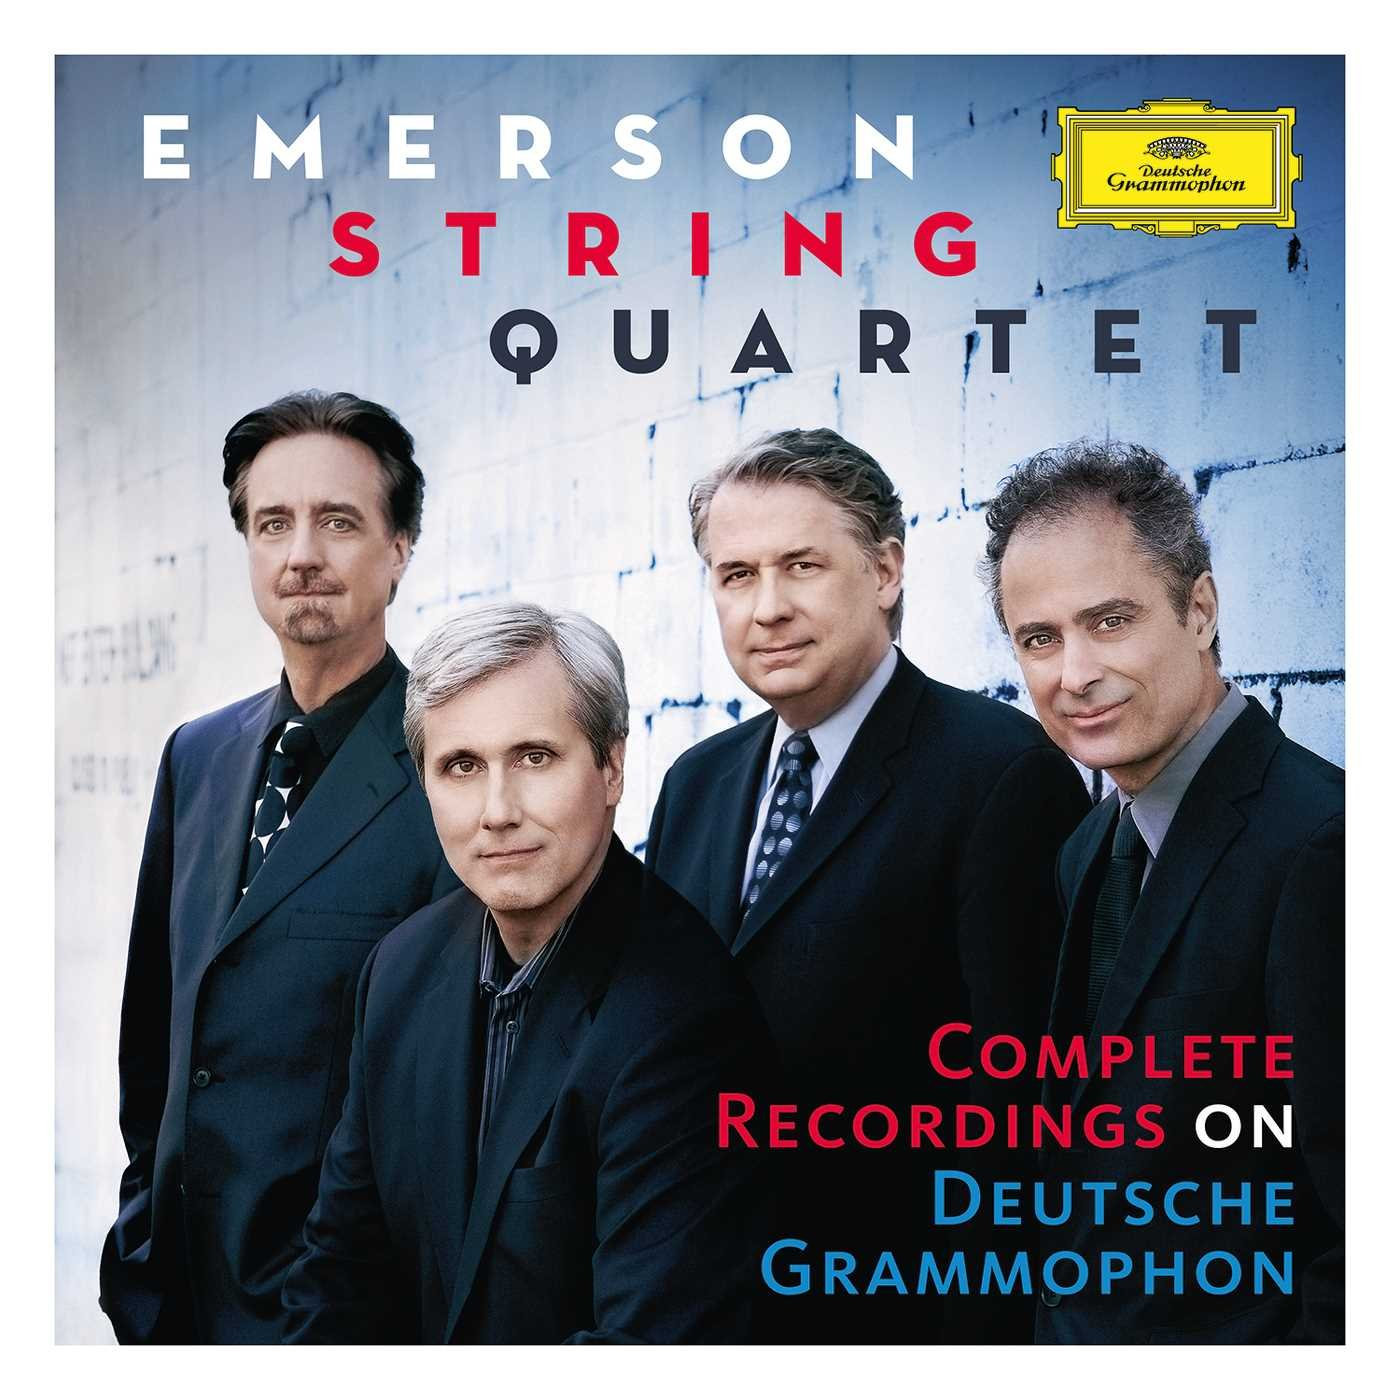 Emerson String Quartet - Complete Recordings On Deutsche Grammophon [52 CD][Box Set]